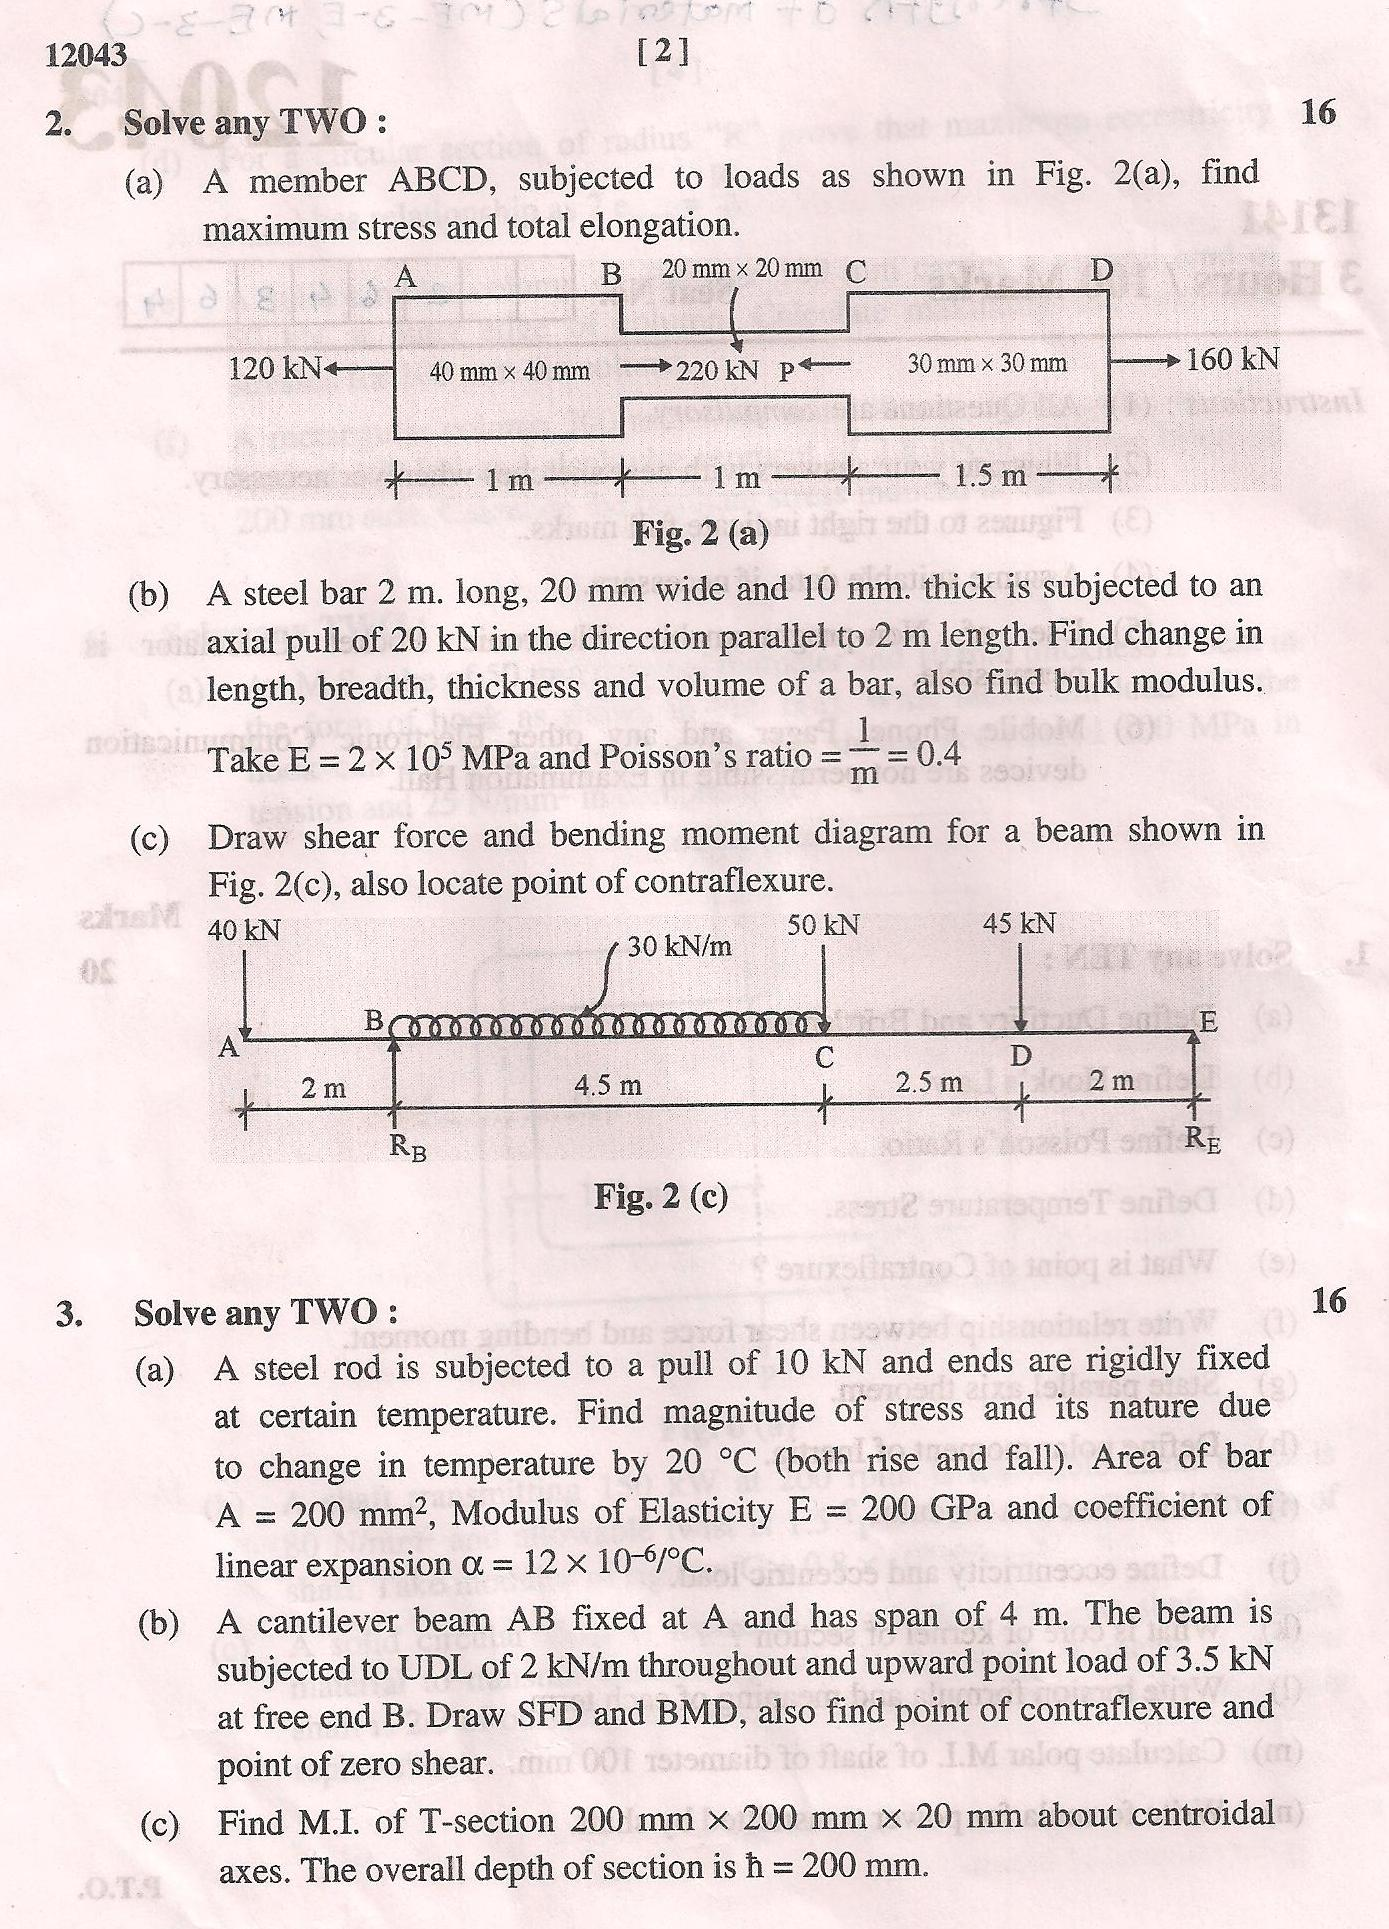 Teach Me How To Volume 2013 General Diploma Mechanical Engineering Original  Question Paper Of Maharashtra State